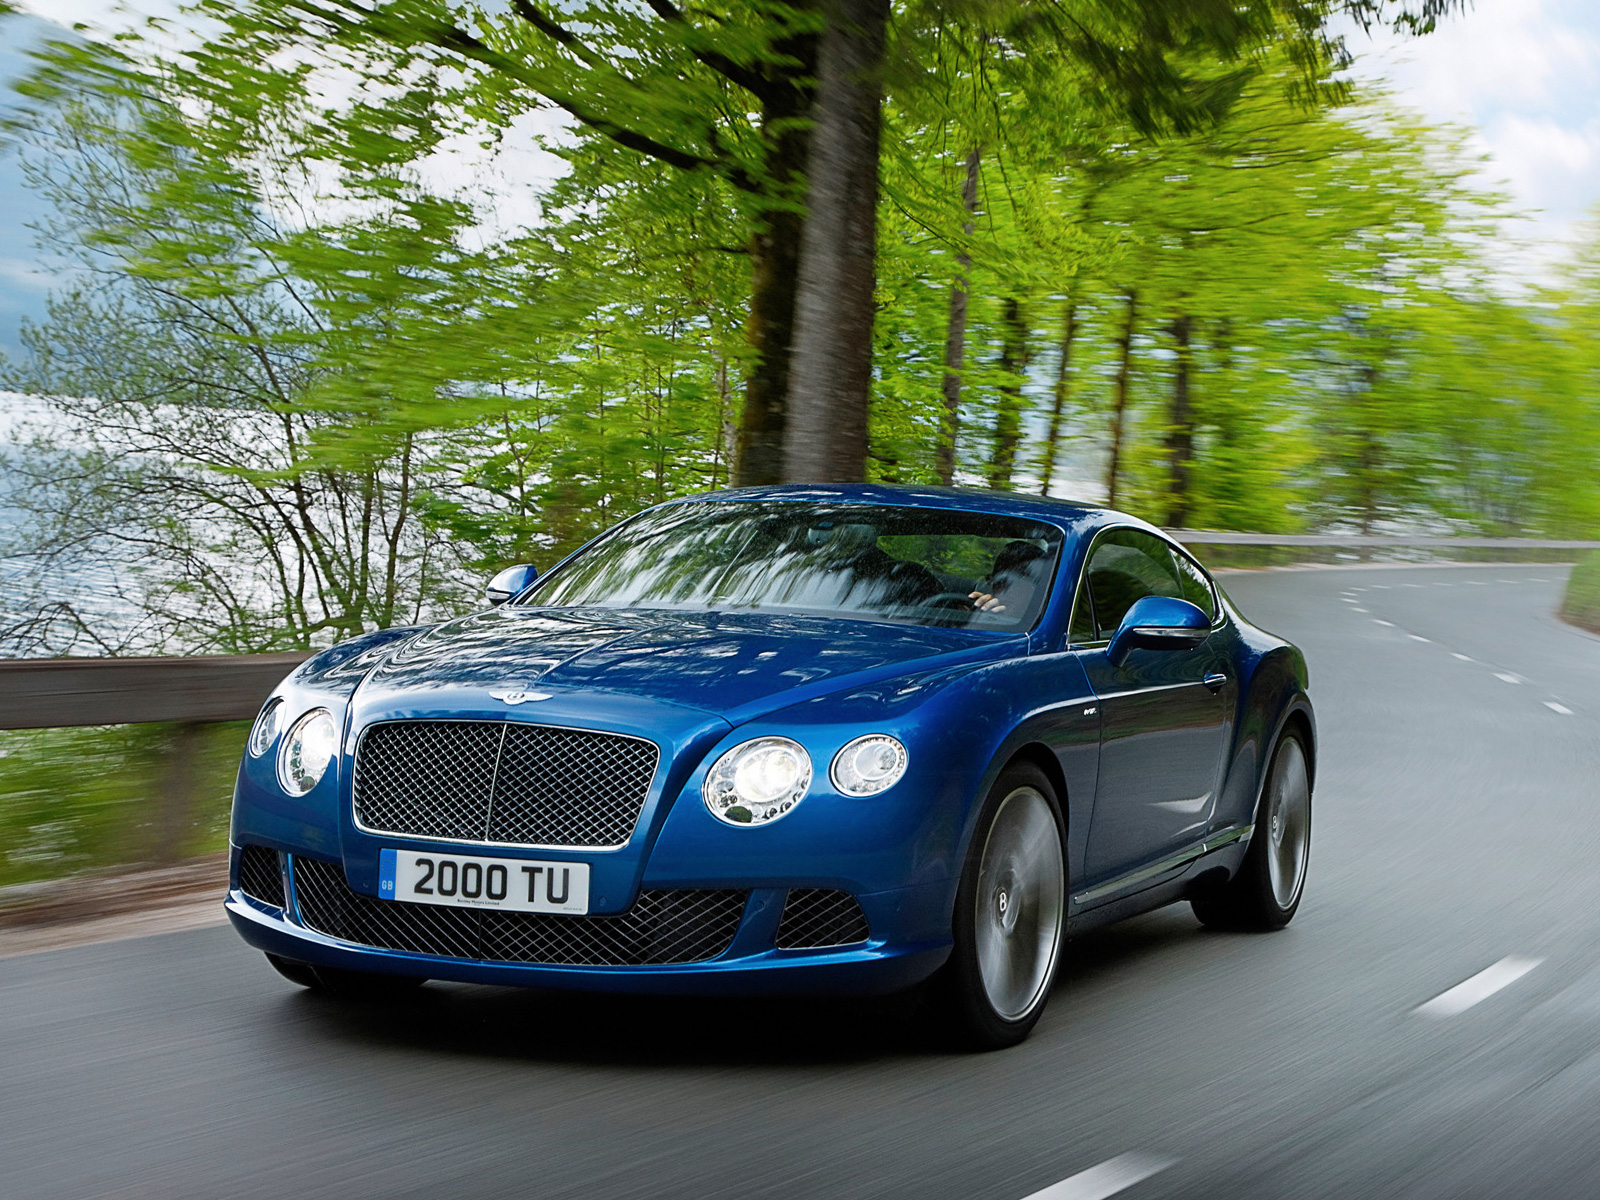 2013 Bentley Continental Gt Speed #4